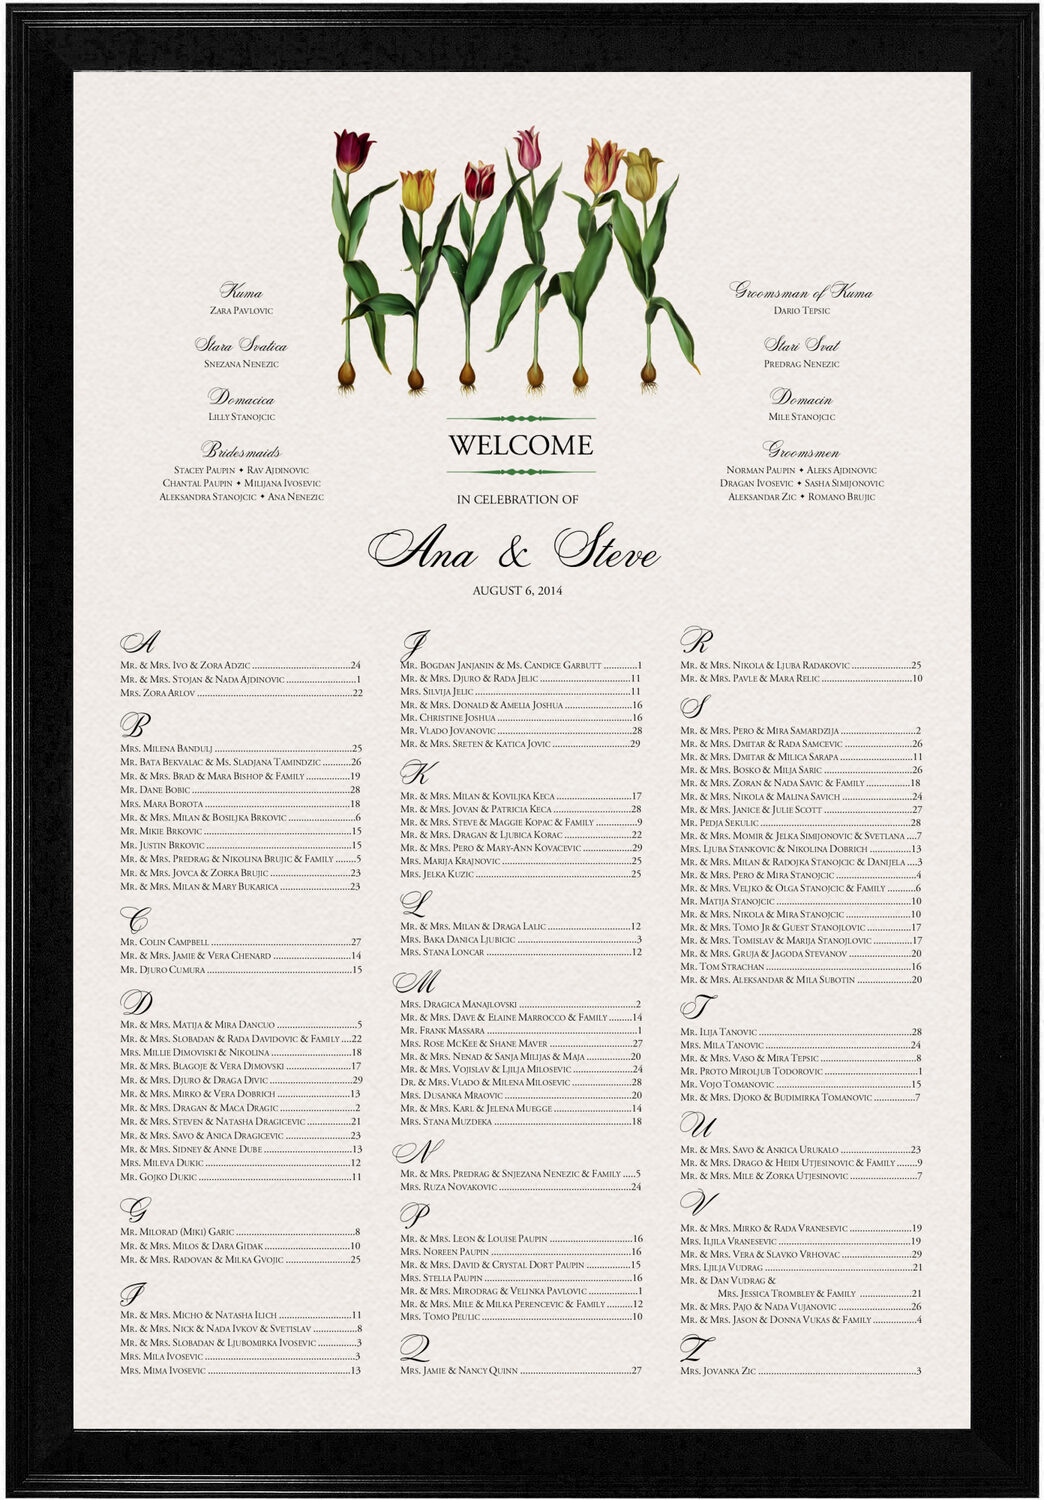 Photograph of Tulip Bulbs Seating Charts